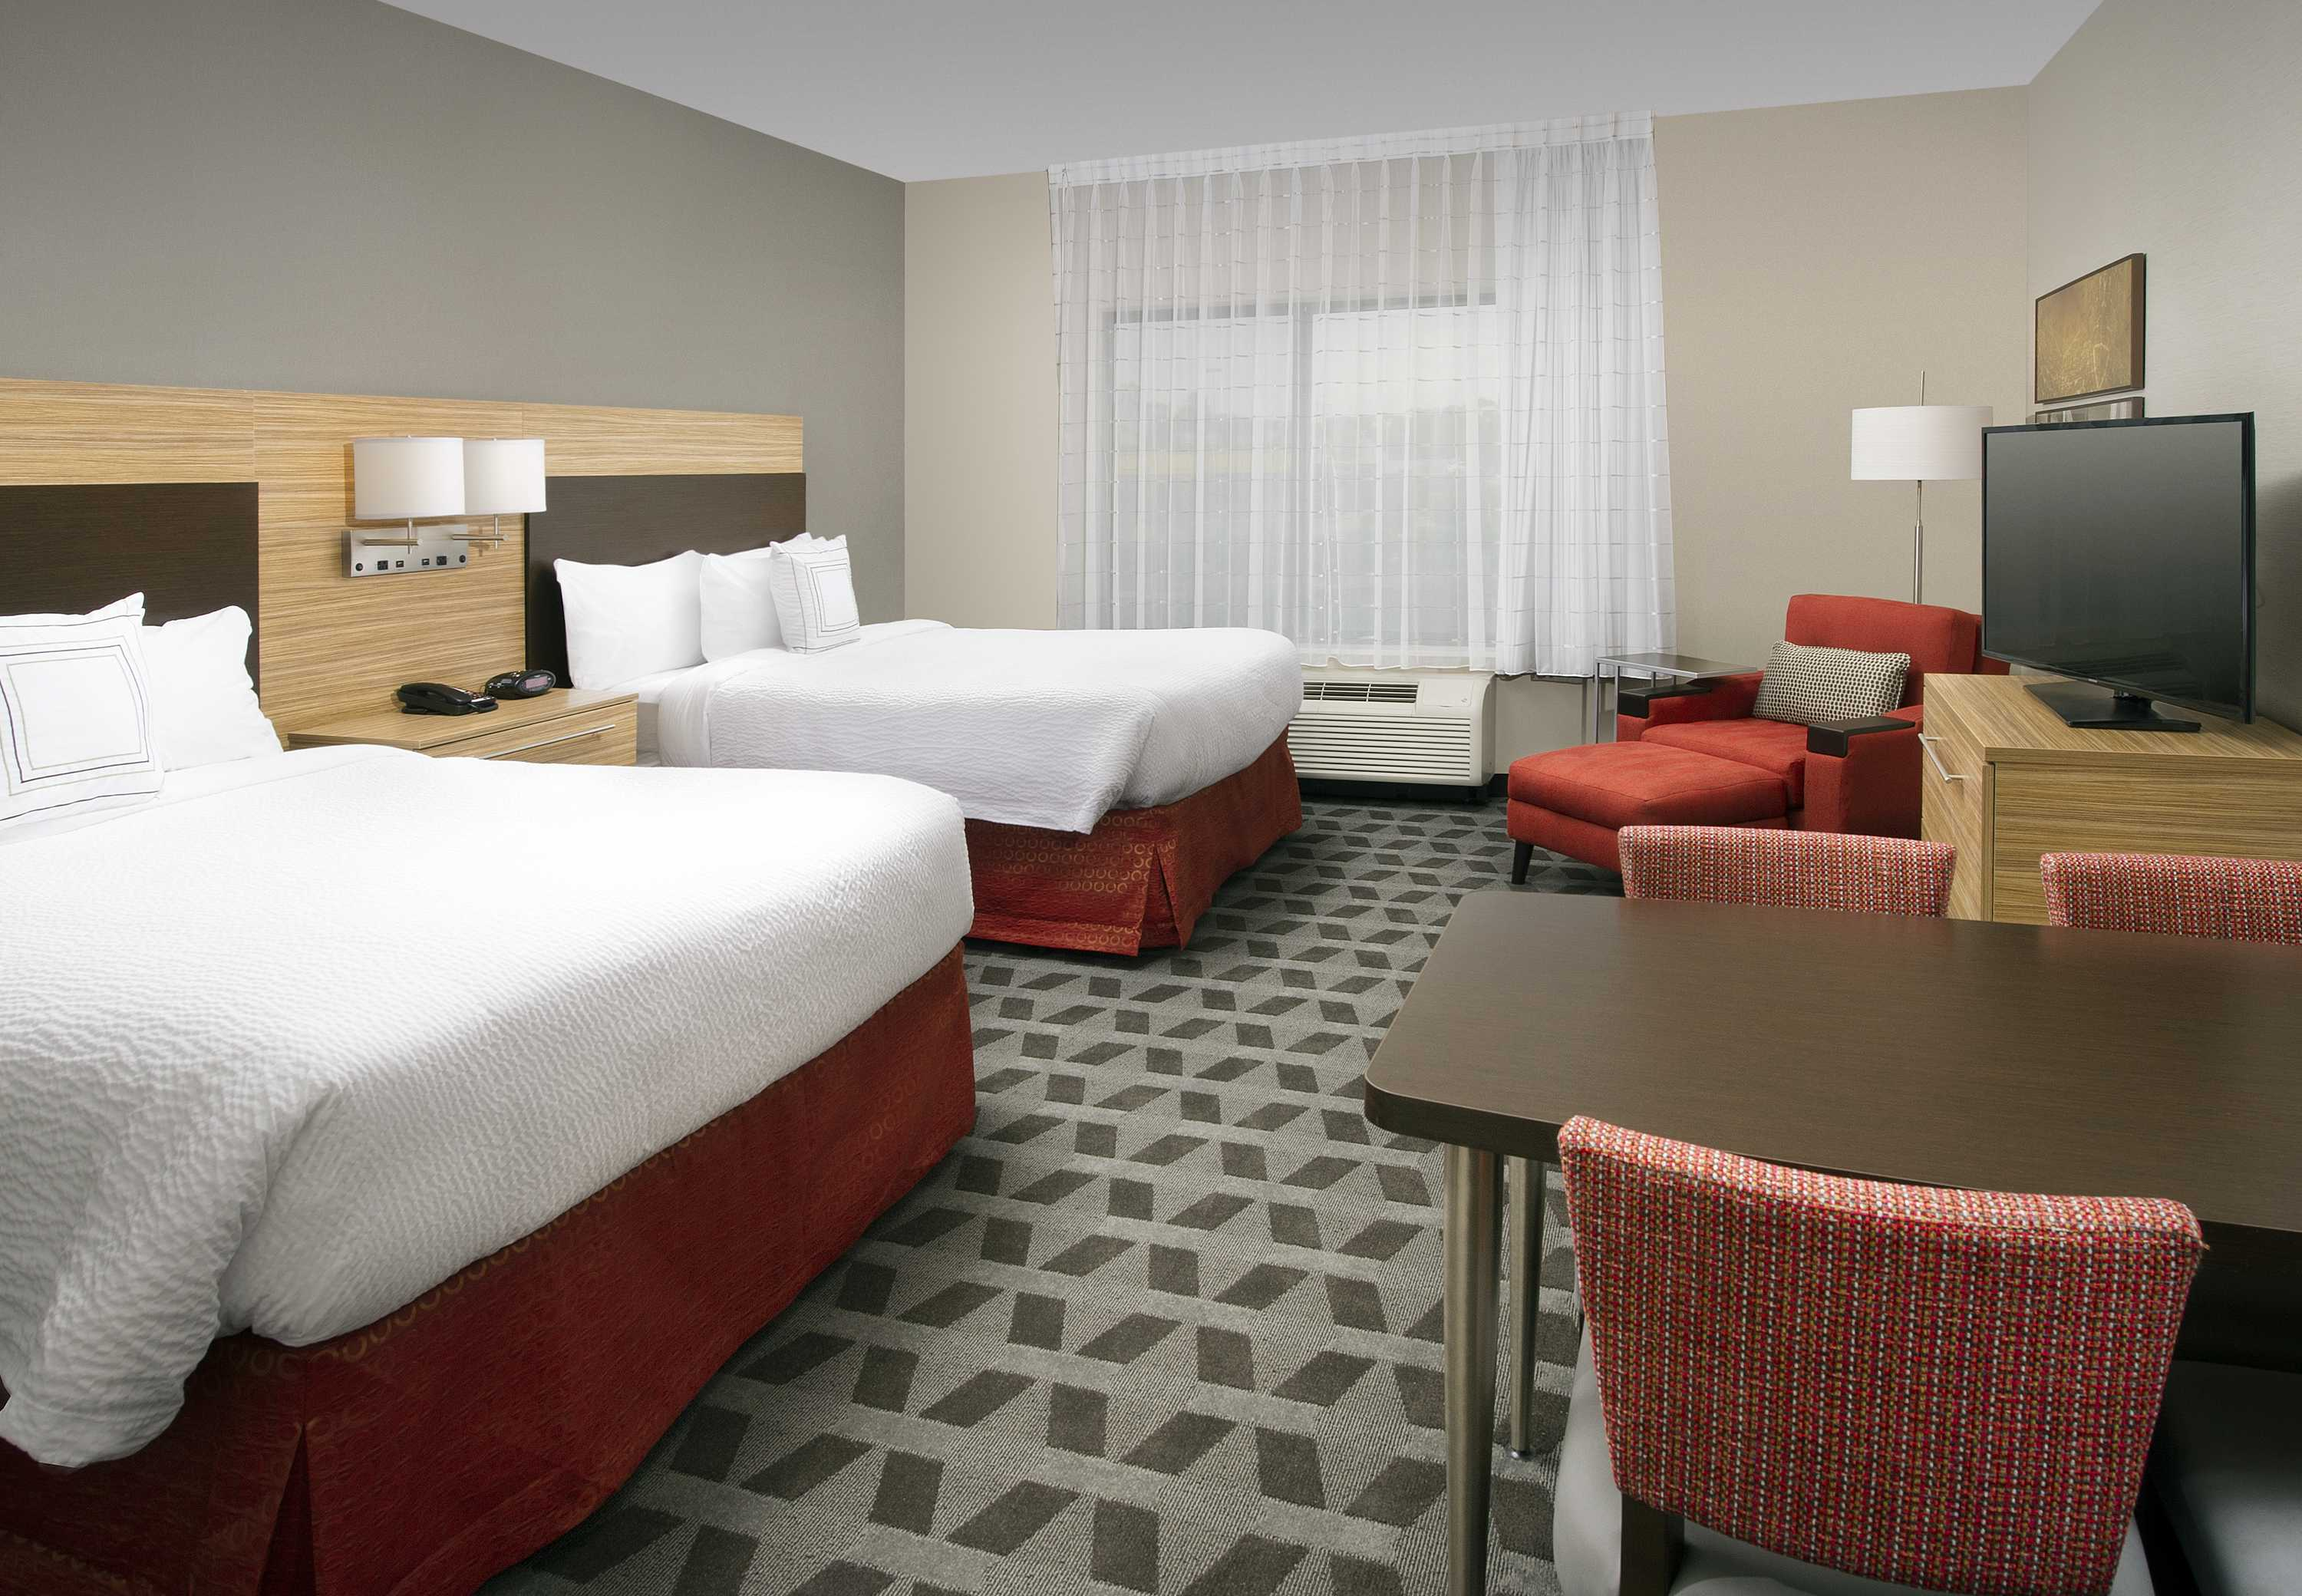 TownePlace Suites by Marriott Alexandria Fort Belvoir image 3